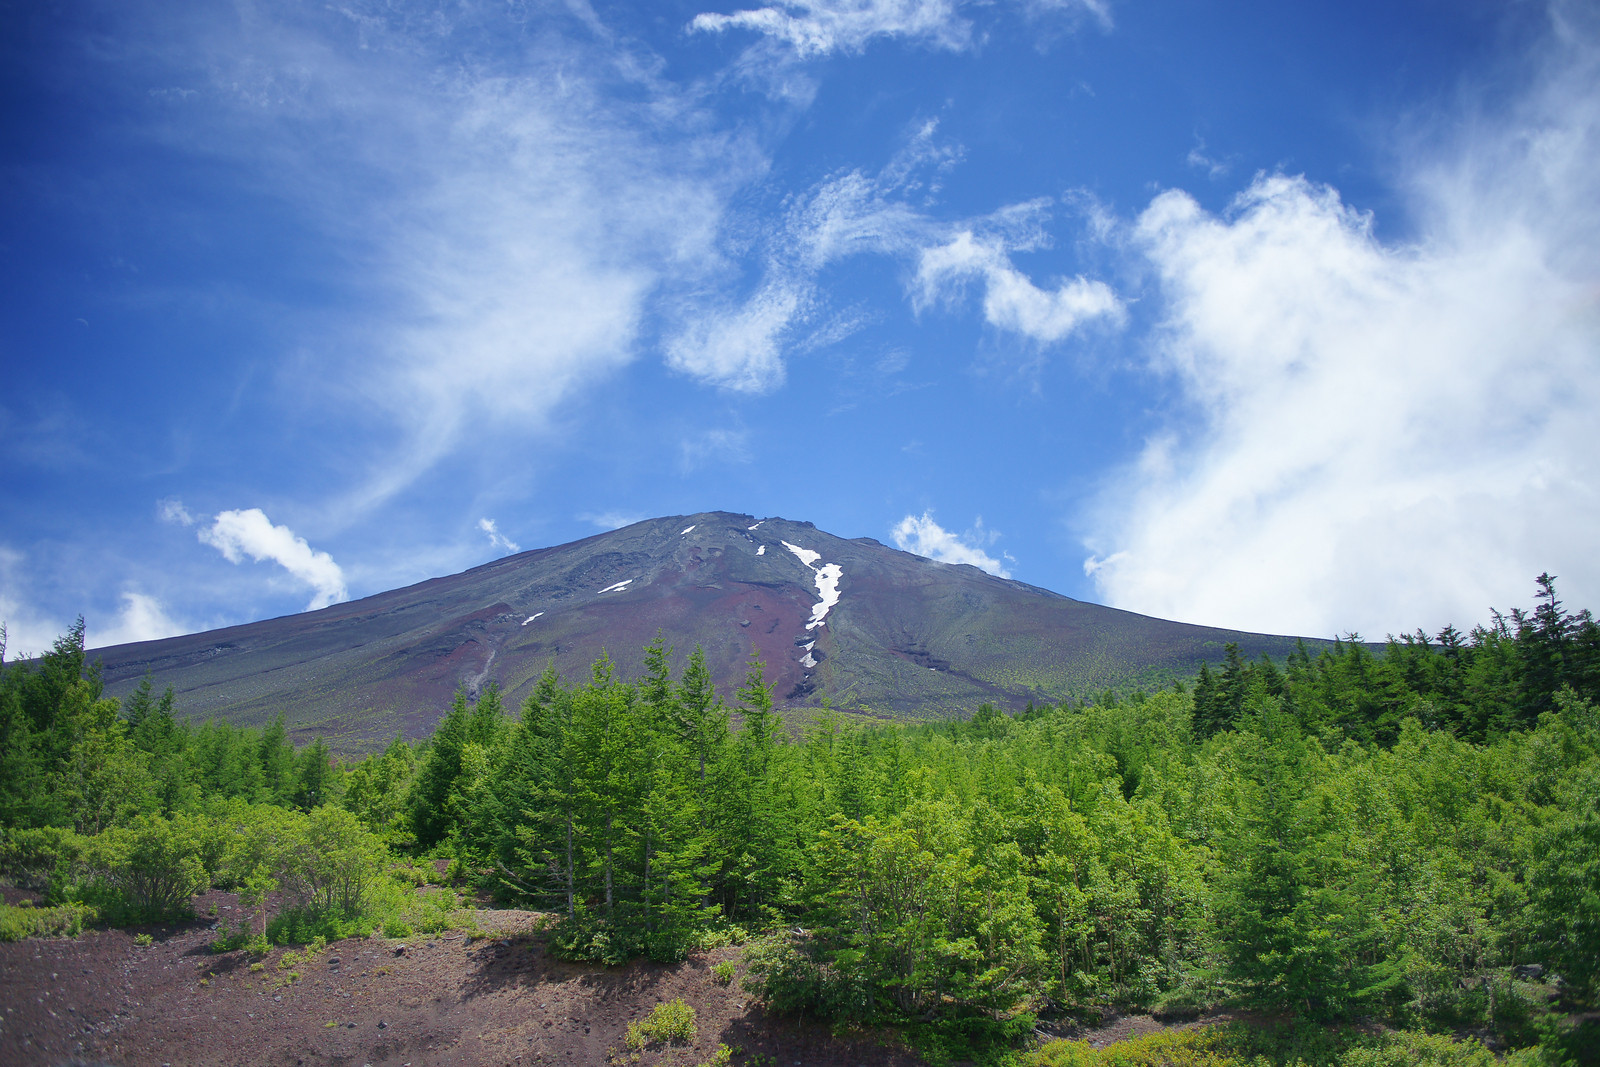 A rare glimpse of Mt Fuji summit in summer (Japan)